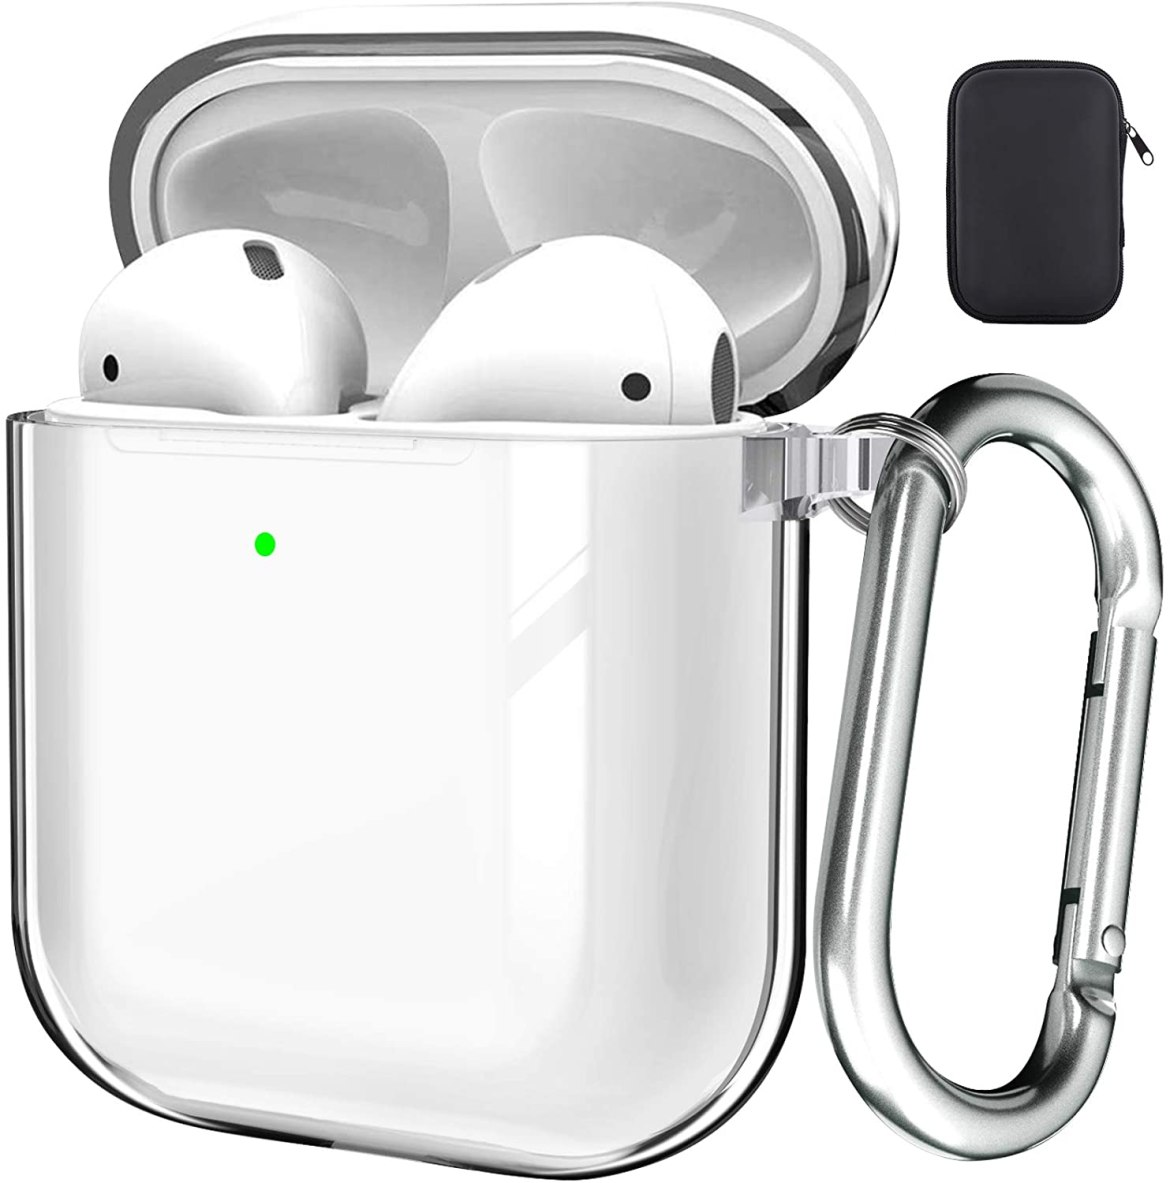 Valkit Airpods Clear Case